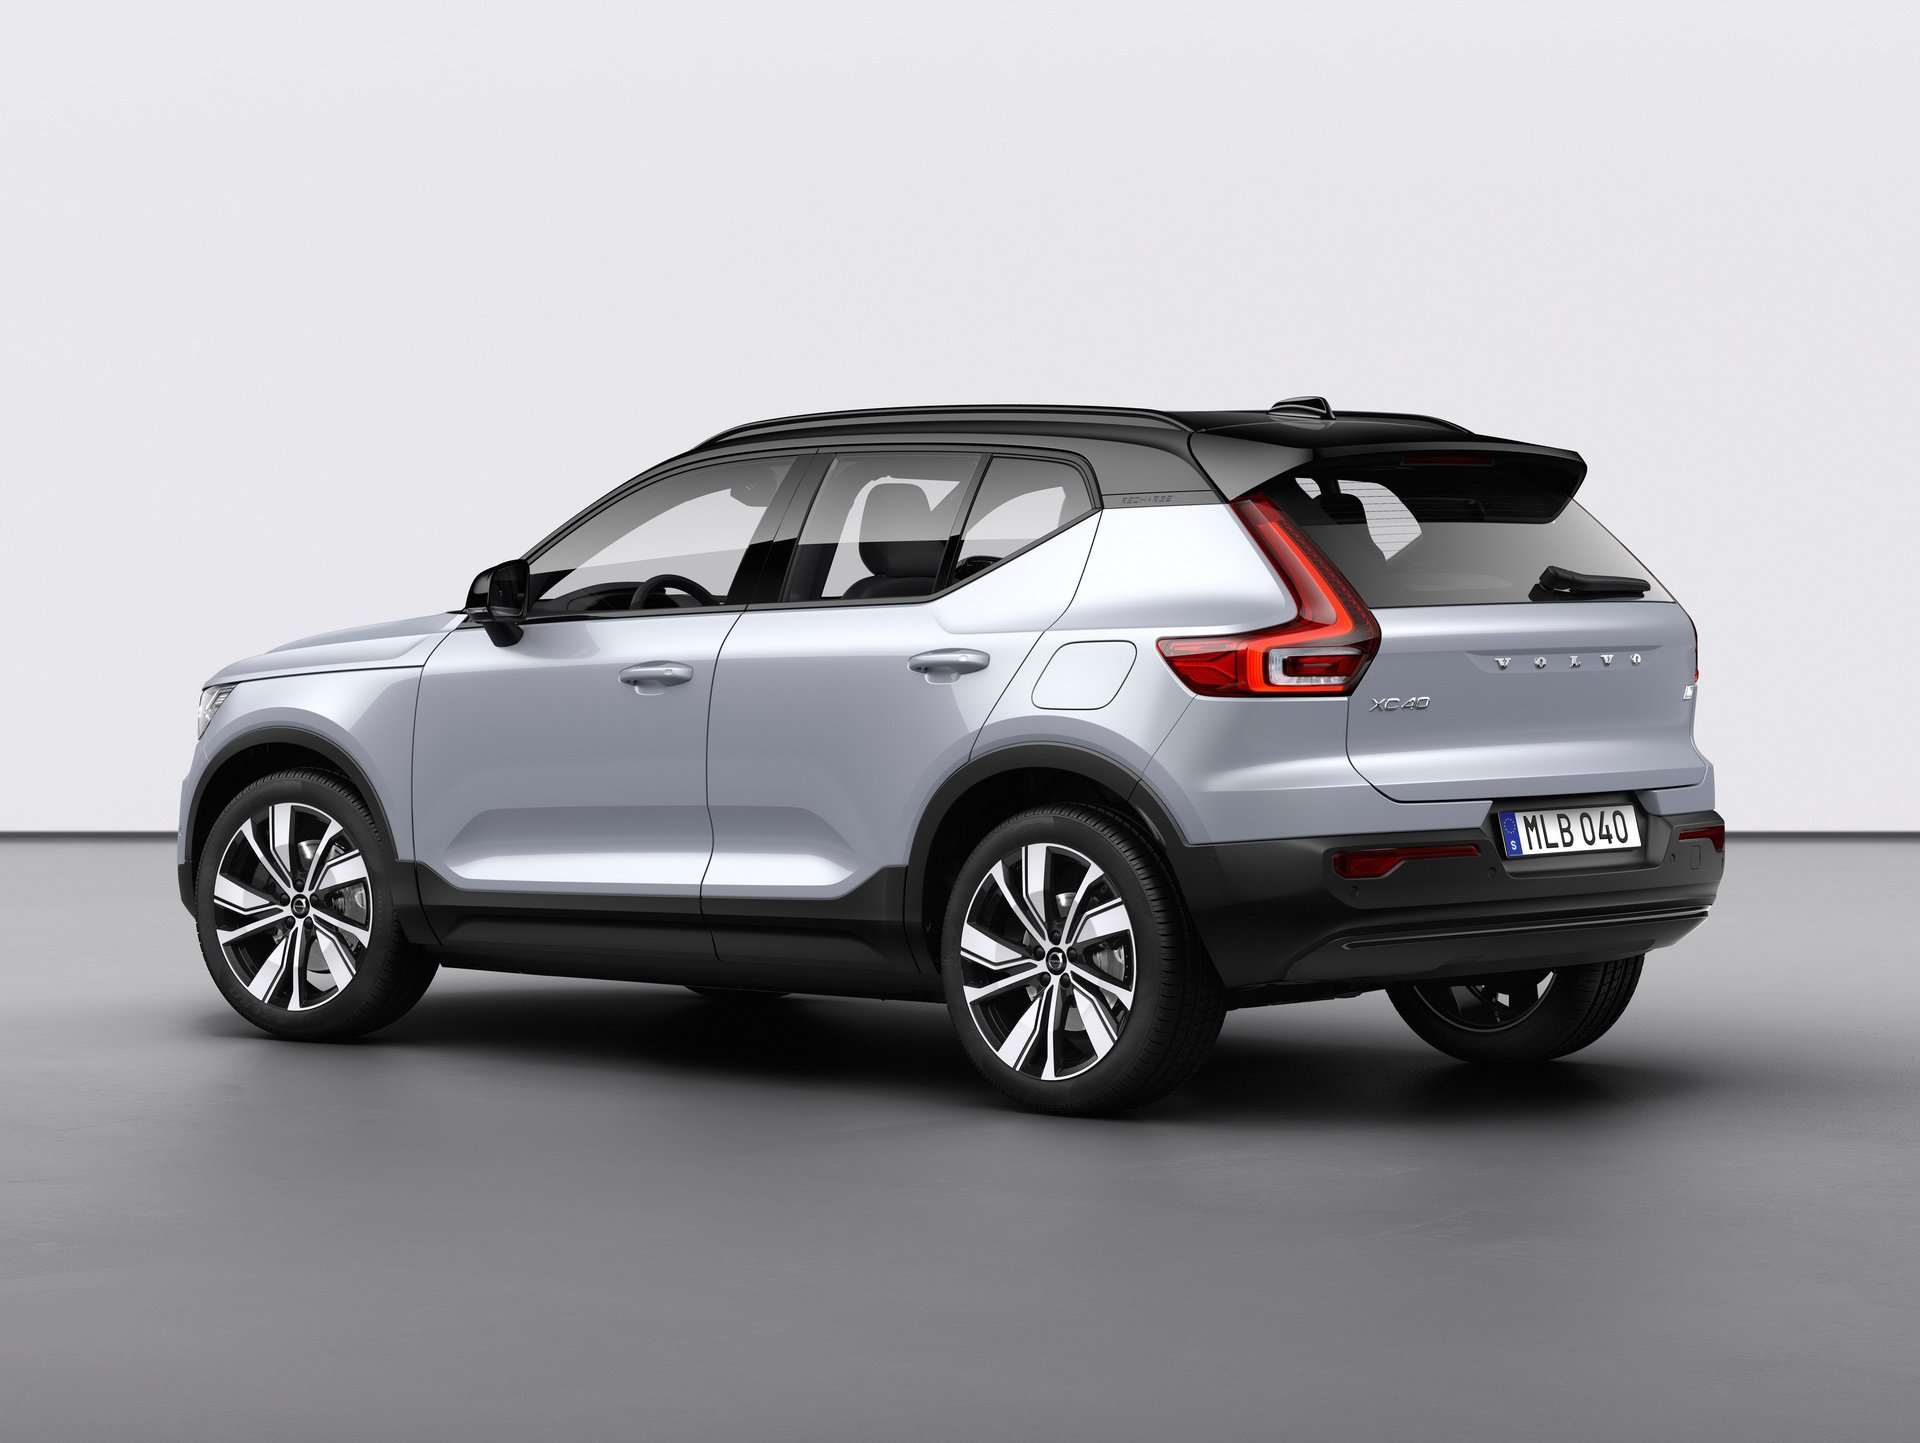 2021 volvo xc40 recharge p8 preorders are go production